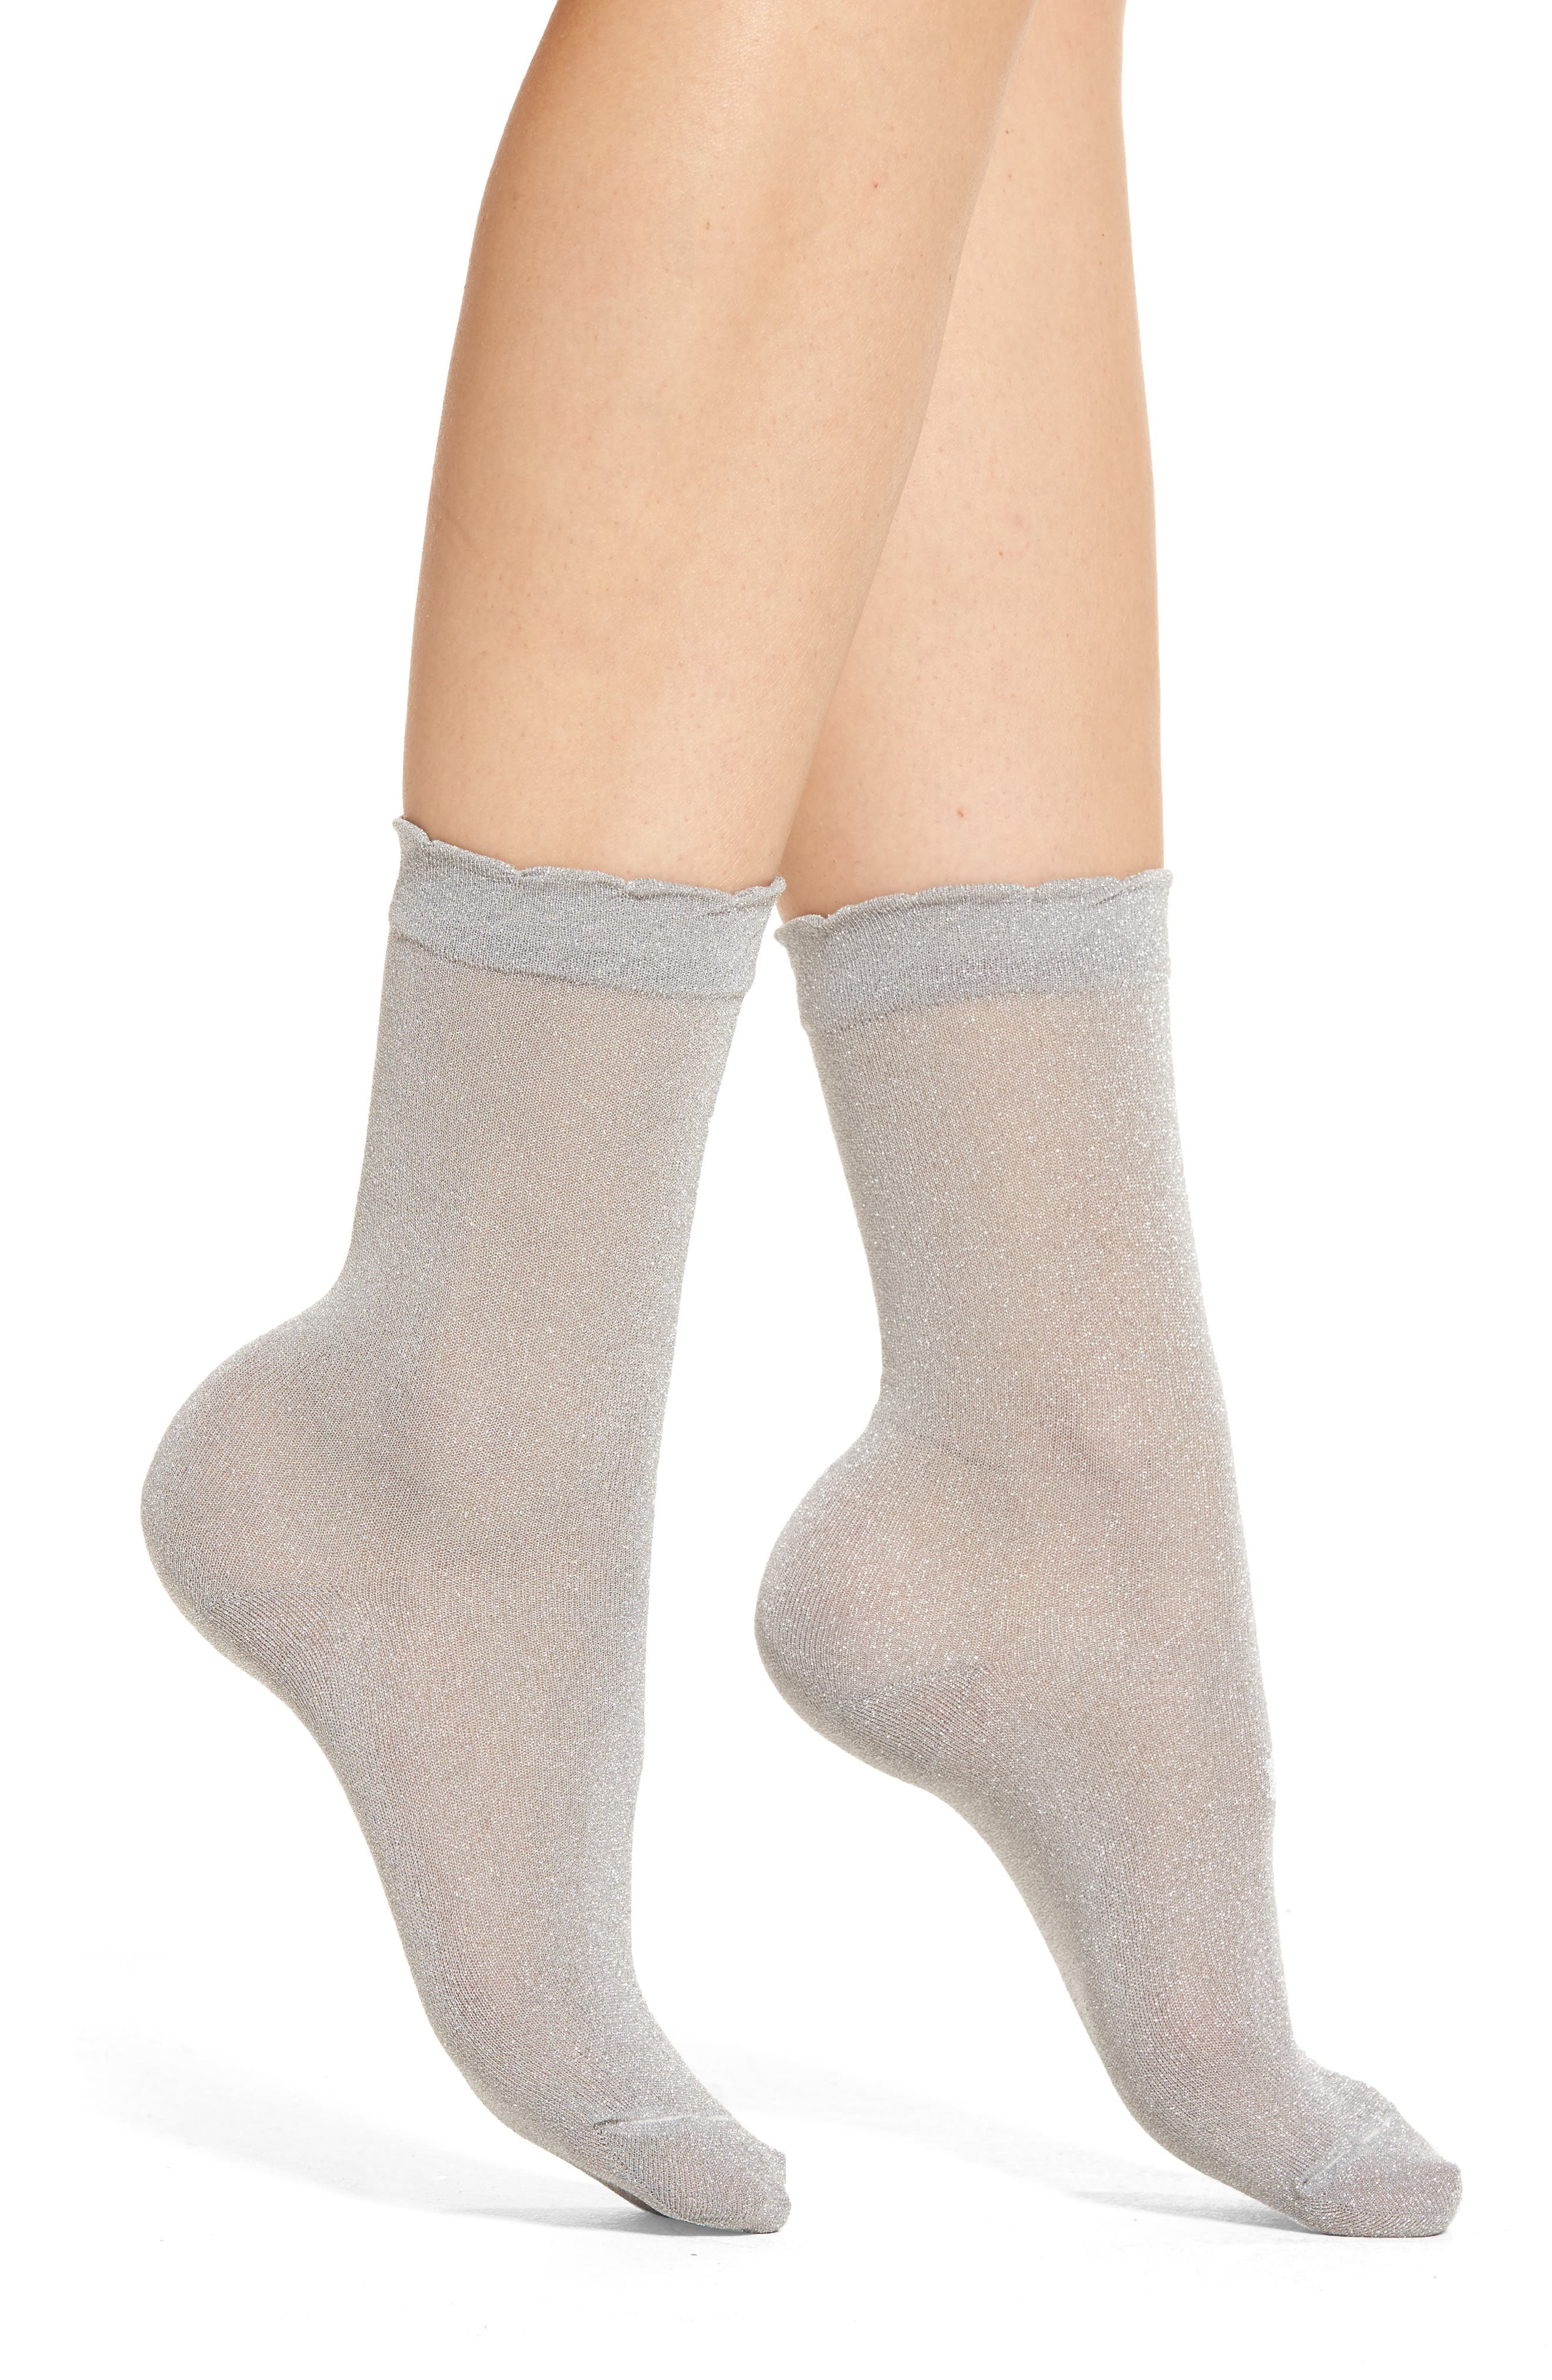 kate spade new york sparkle trouser socks (3 for $24)